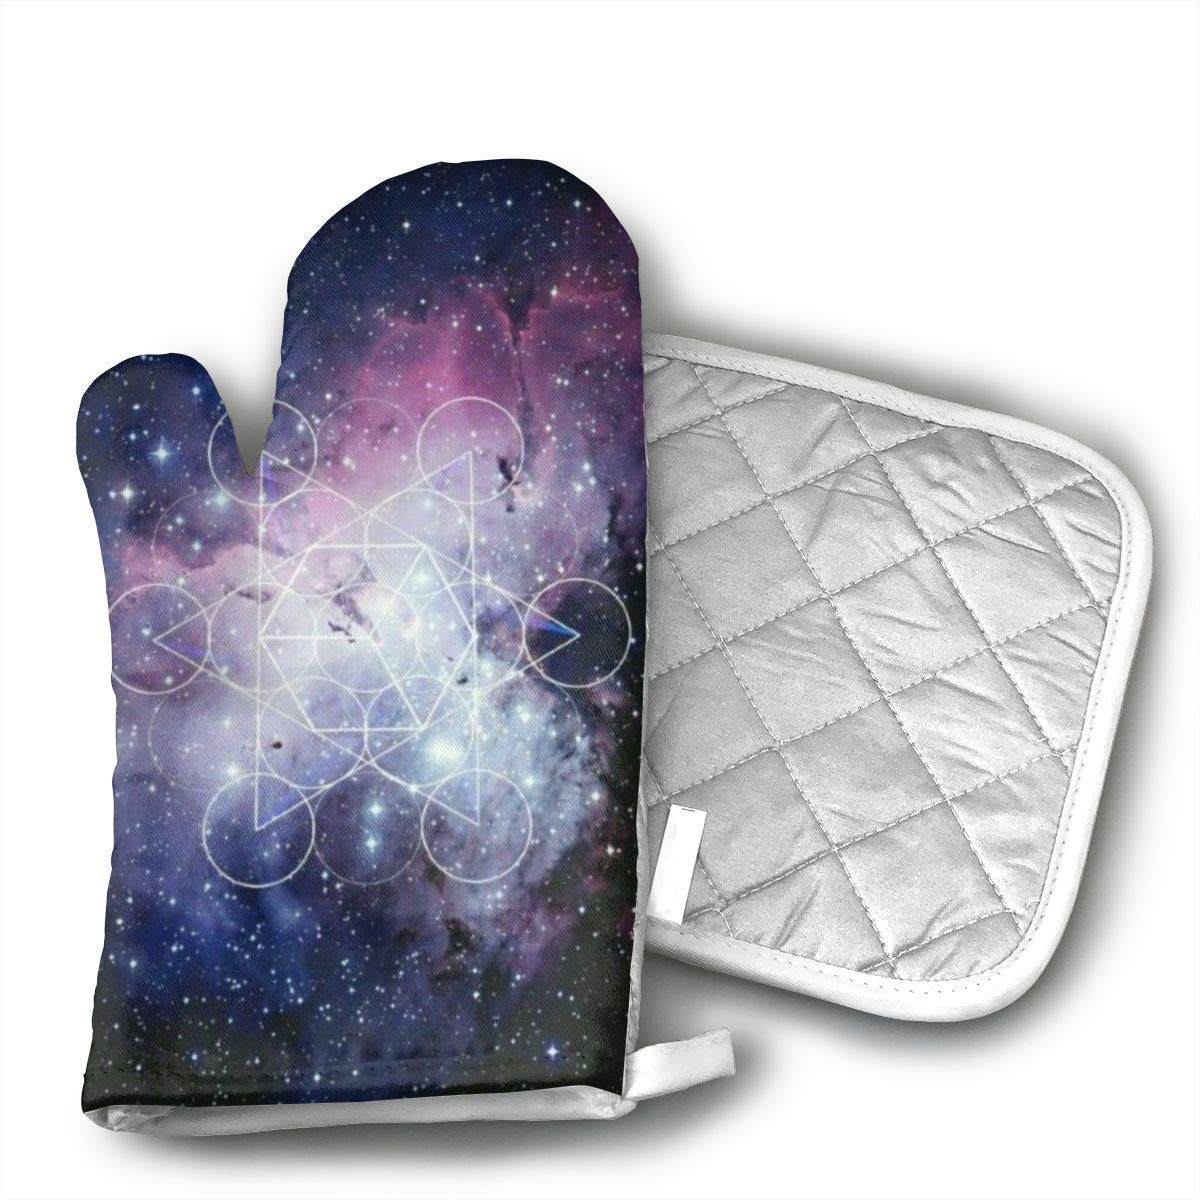 TUJABZA71 LZVQBQDYAA Outer Space Infinity Galaxy Universe. Oven Mitts Heat Resistant Cooking Gloves Non-Slip Waterproof Potholders